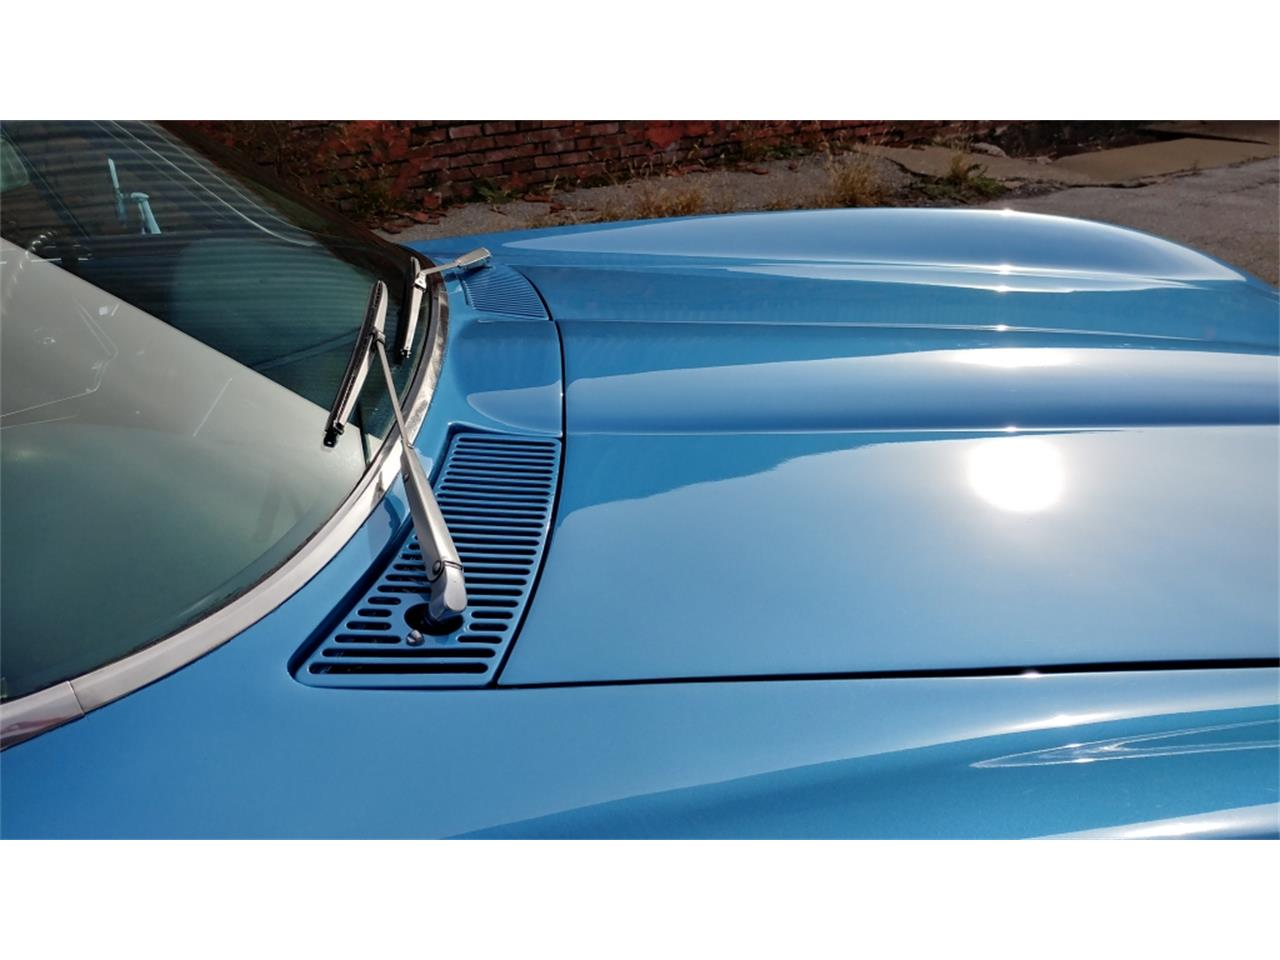 Large Picture of Classic 1967 Chevrolet Corvette - $69,500.00 Offered by Vintage Vettes, LLC - MO2L